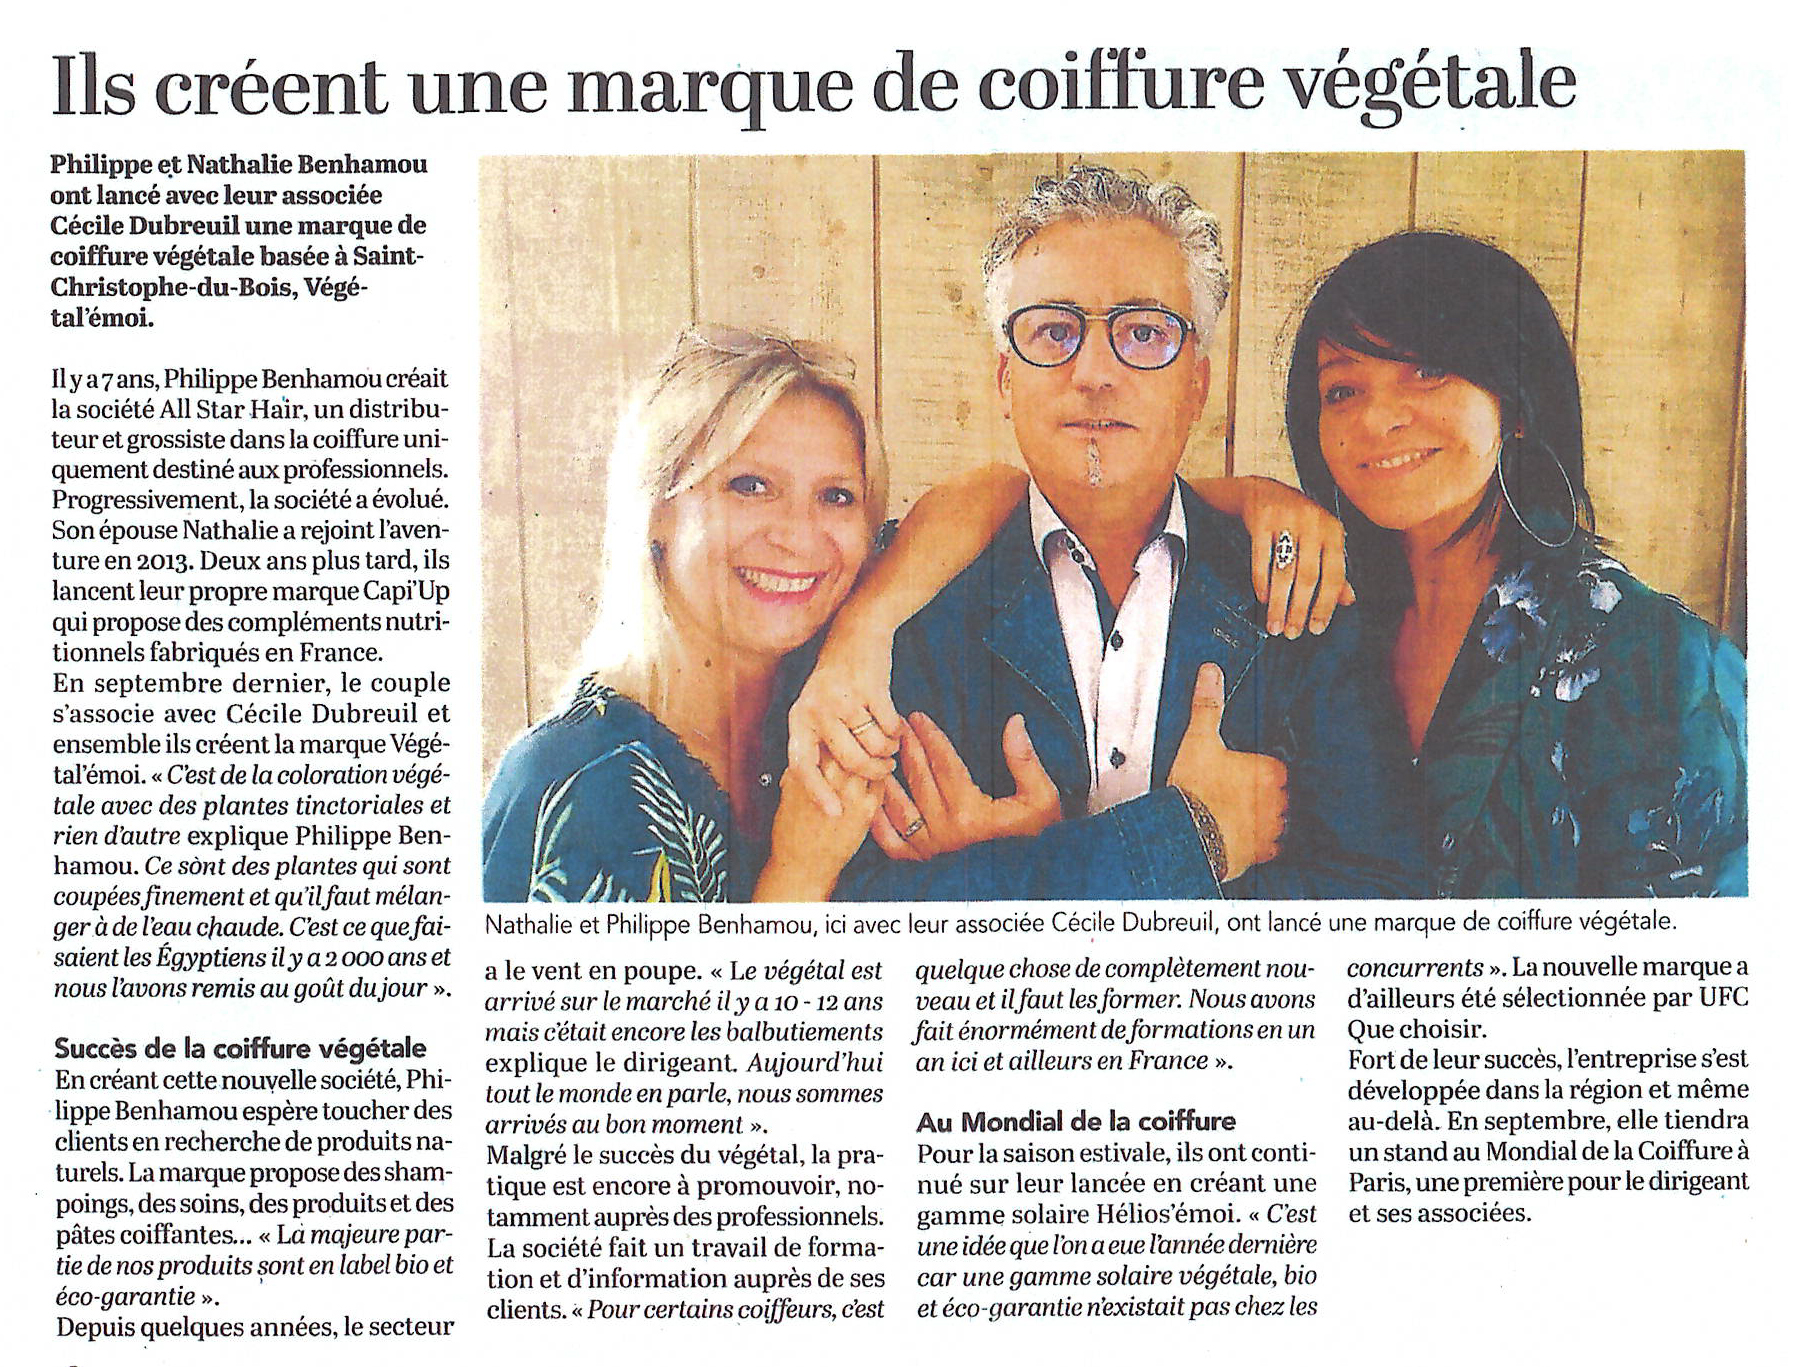 courrier de louest - vegetalemoi